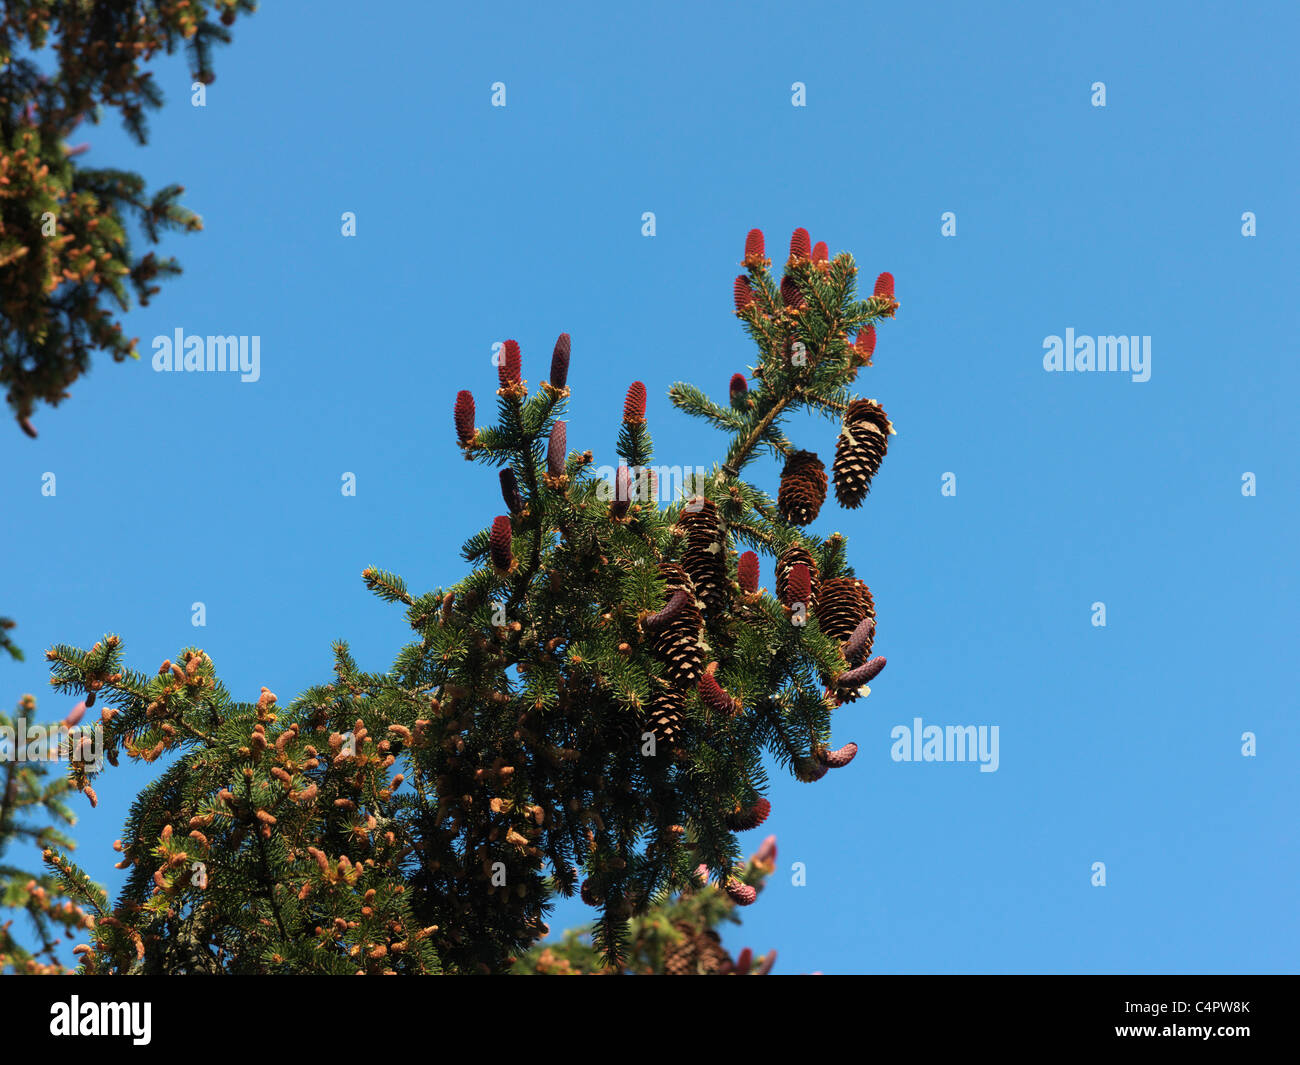 New Red Pine Cones Forming on Pine Tree - Stock Image